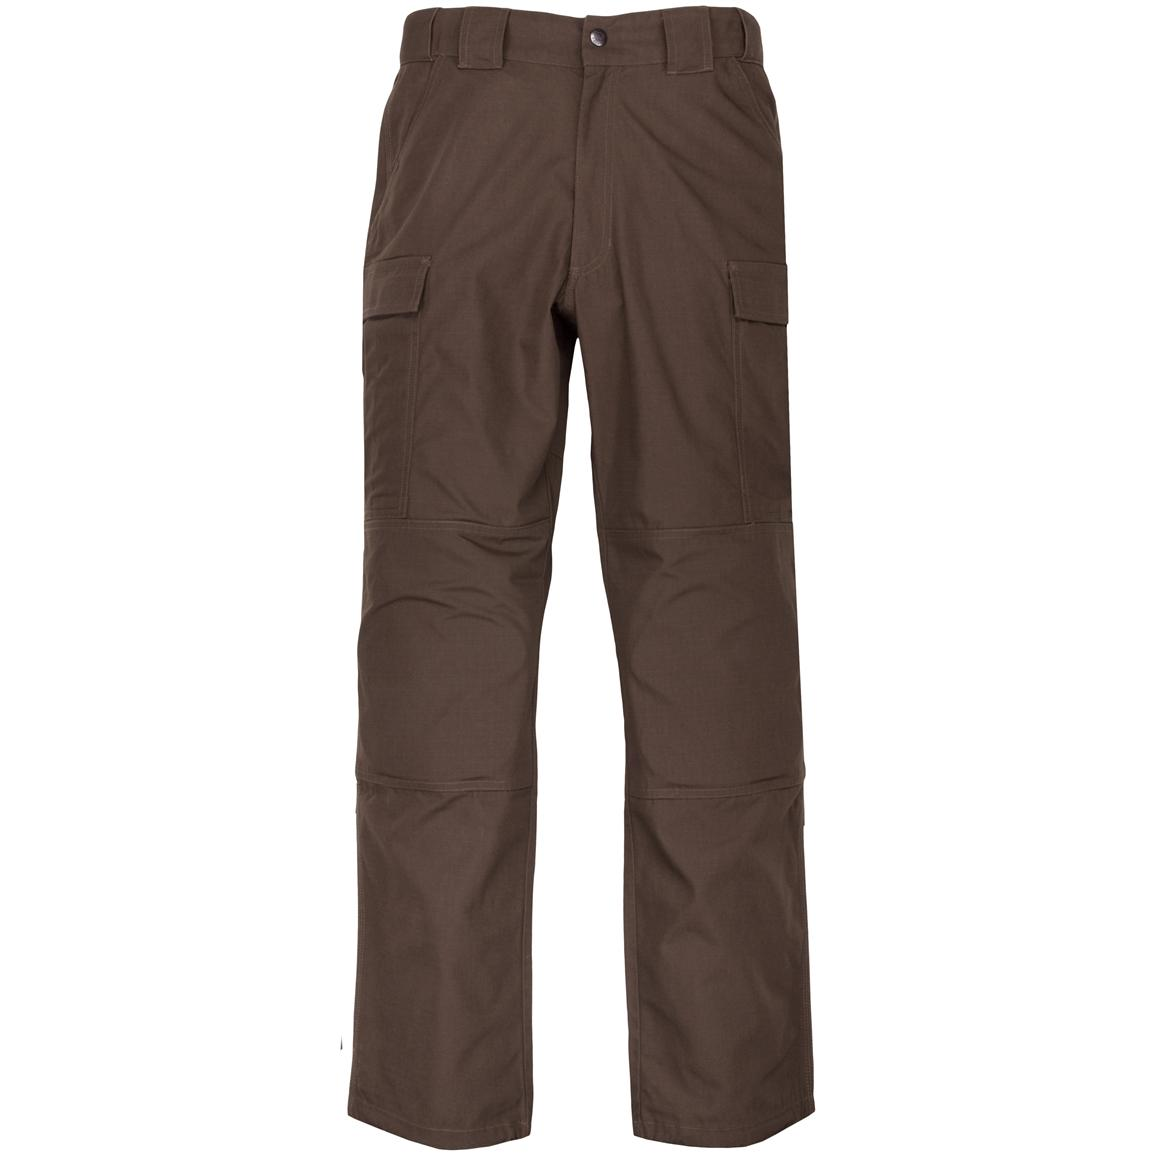 Men's 5.11 Tactical® Ripstop TDU® Pants, Brown